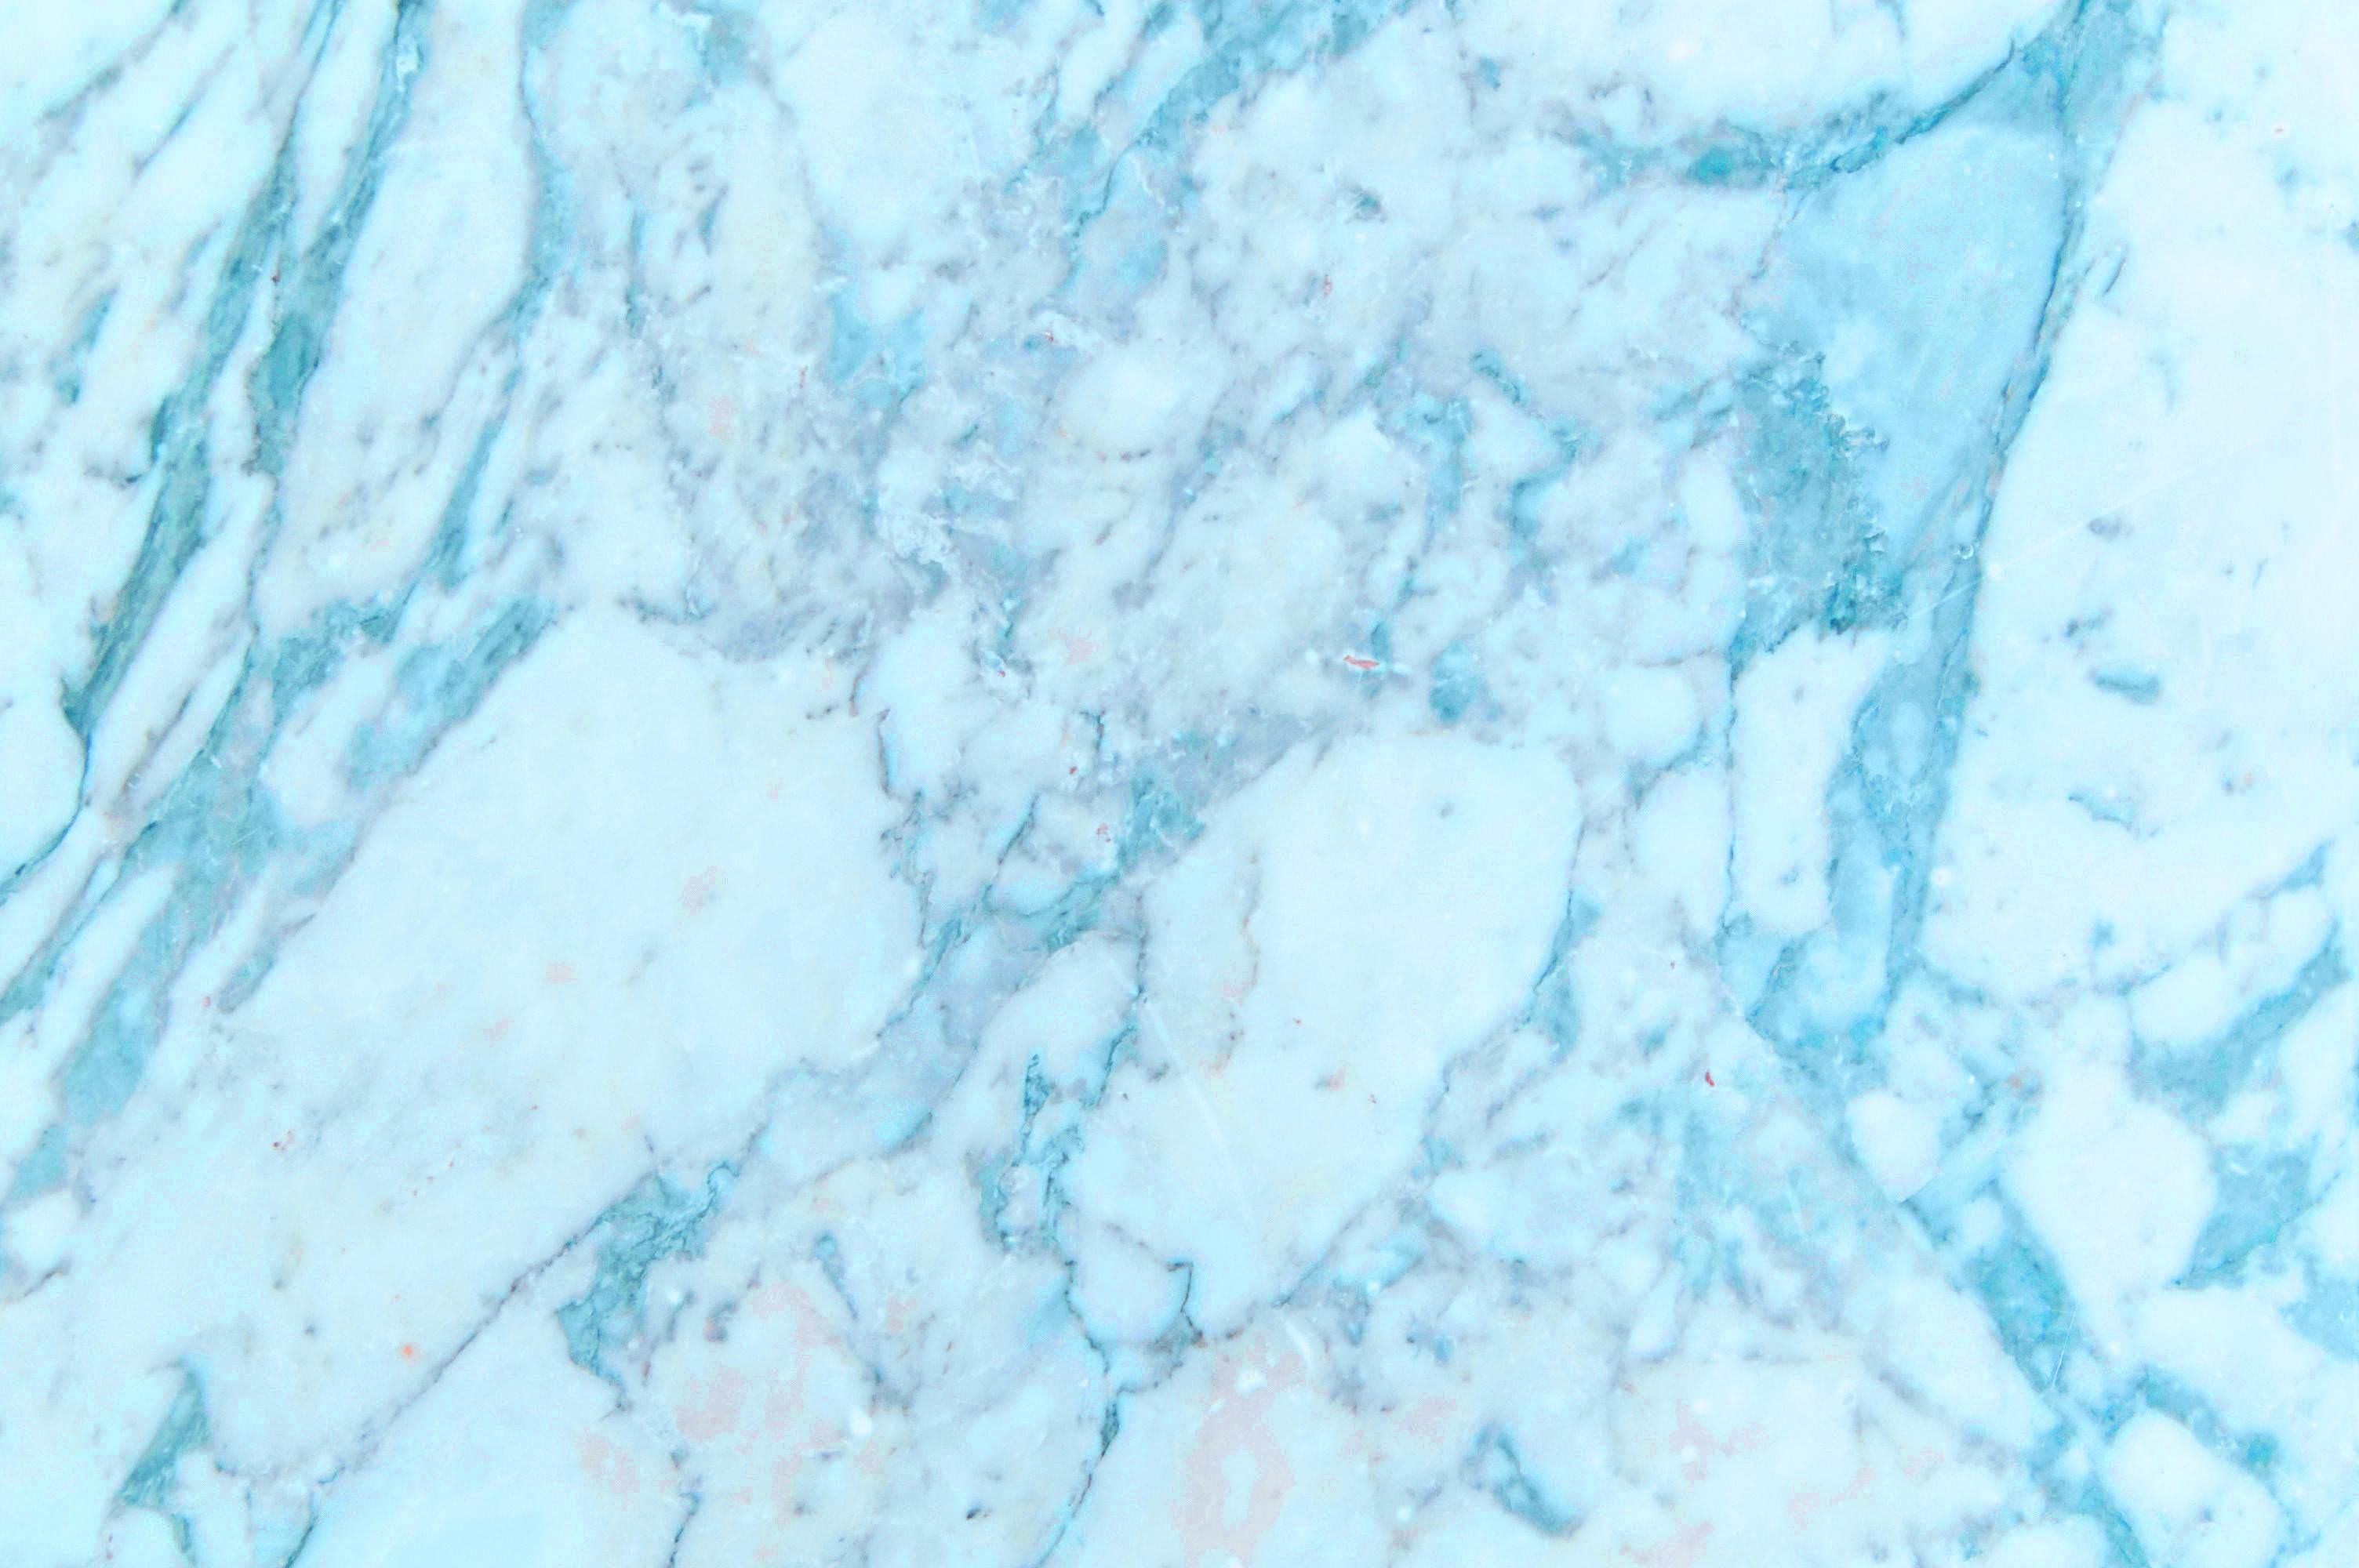 3008x2000 FREE DOWNLOADS | the marble collection - the drifter